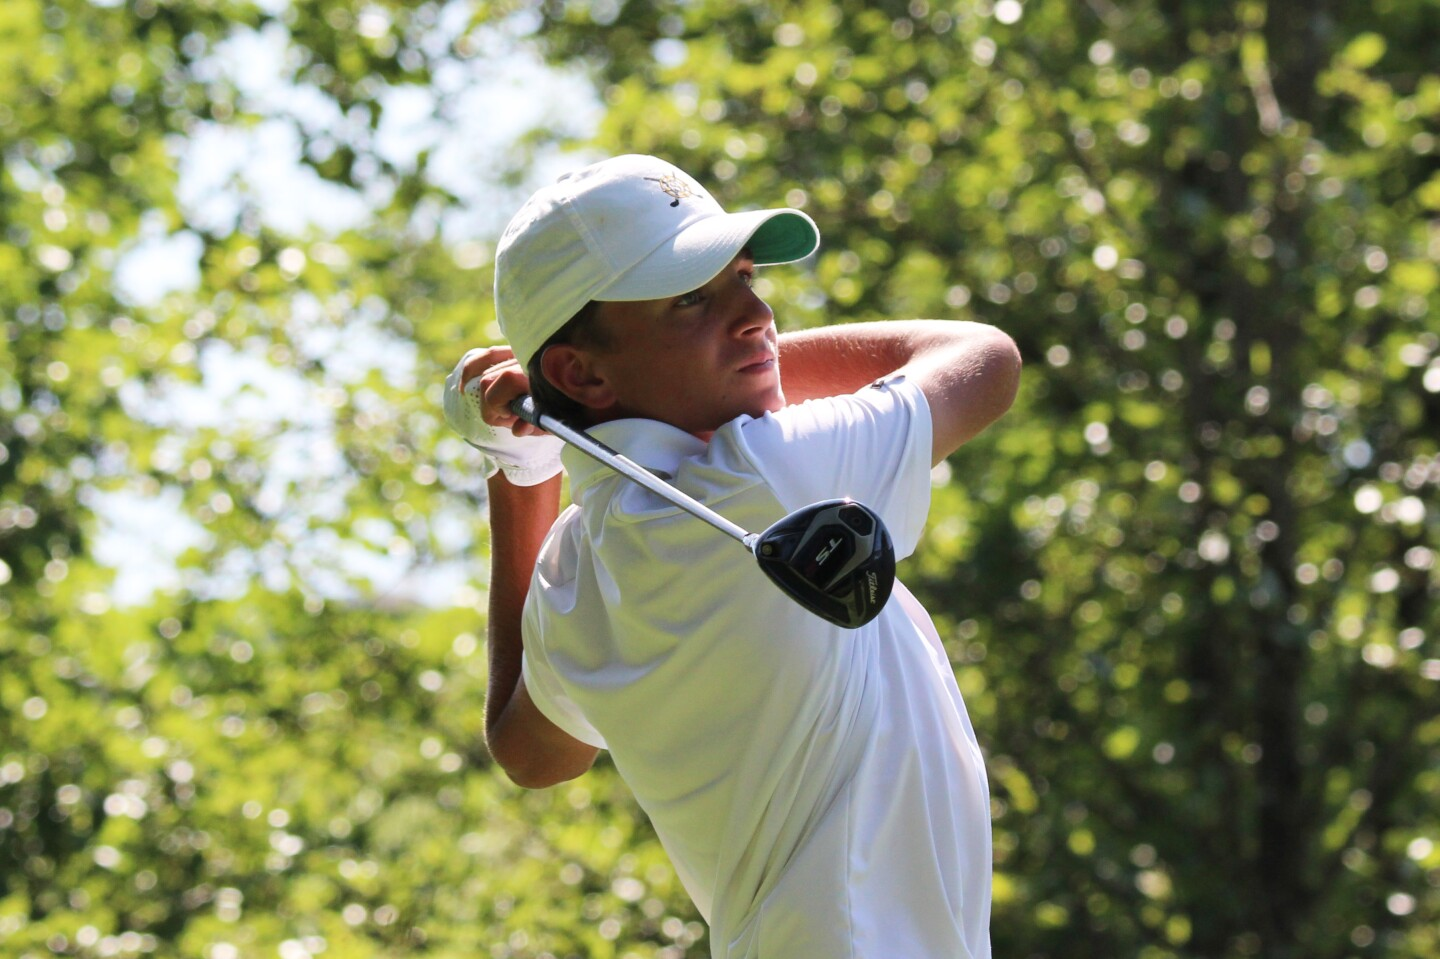 Rocco Salvitti, Action Photo for web Southpointe Jr. 2019.jpg